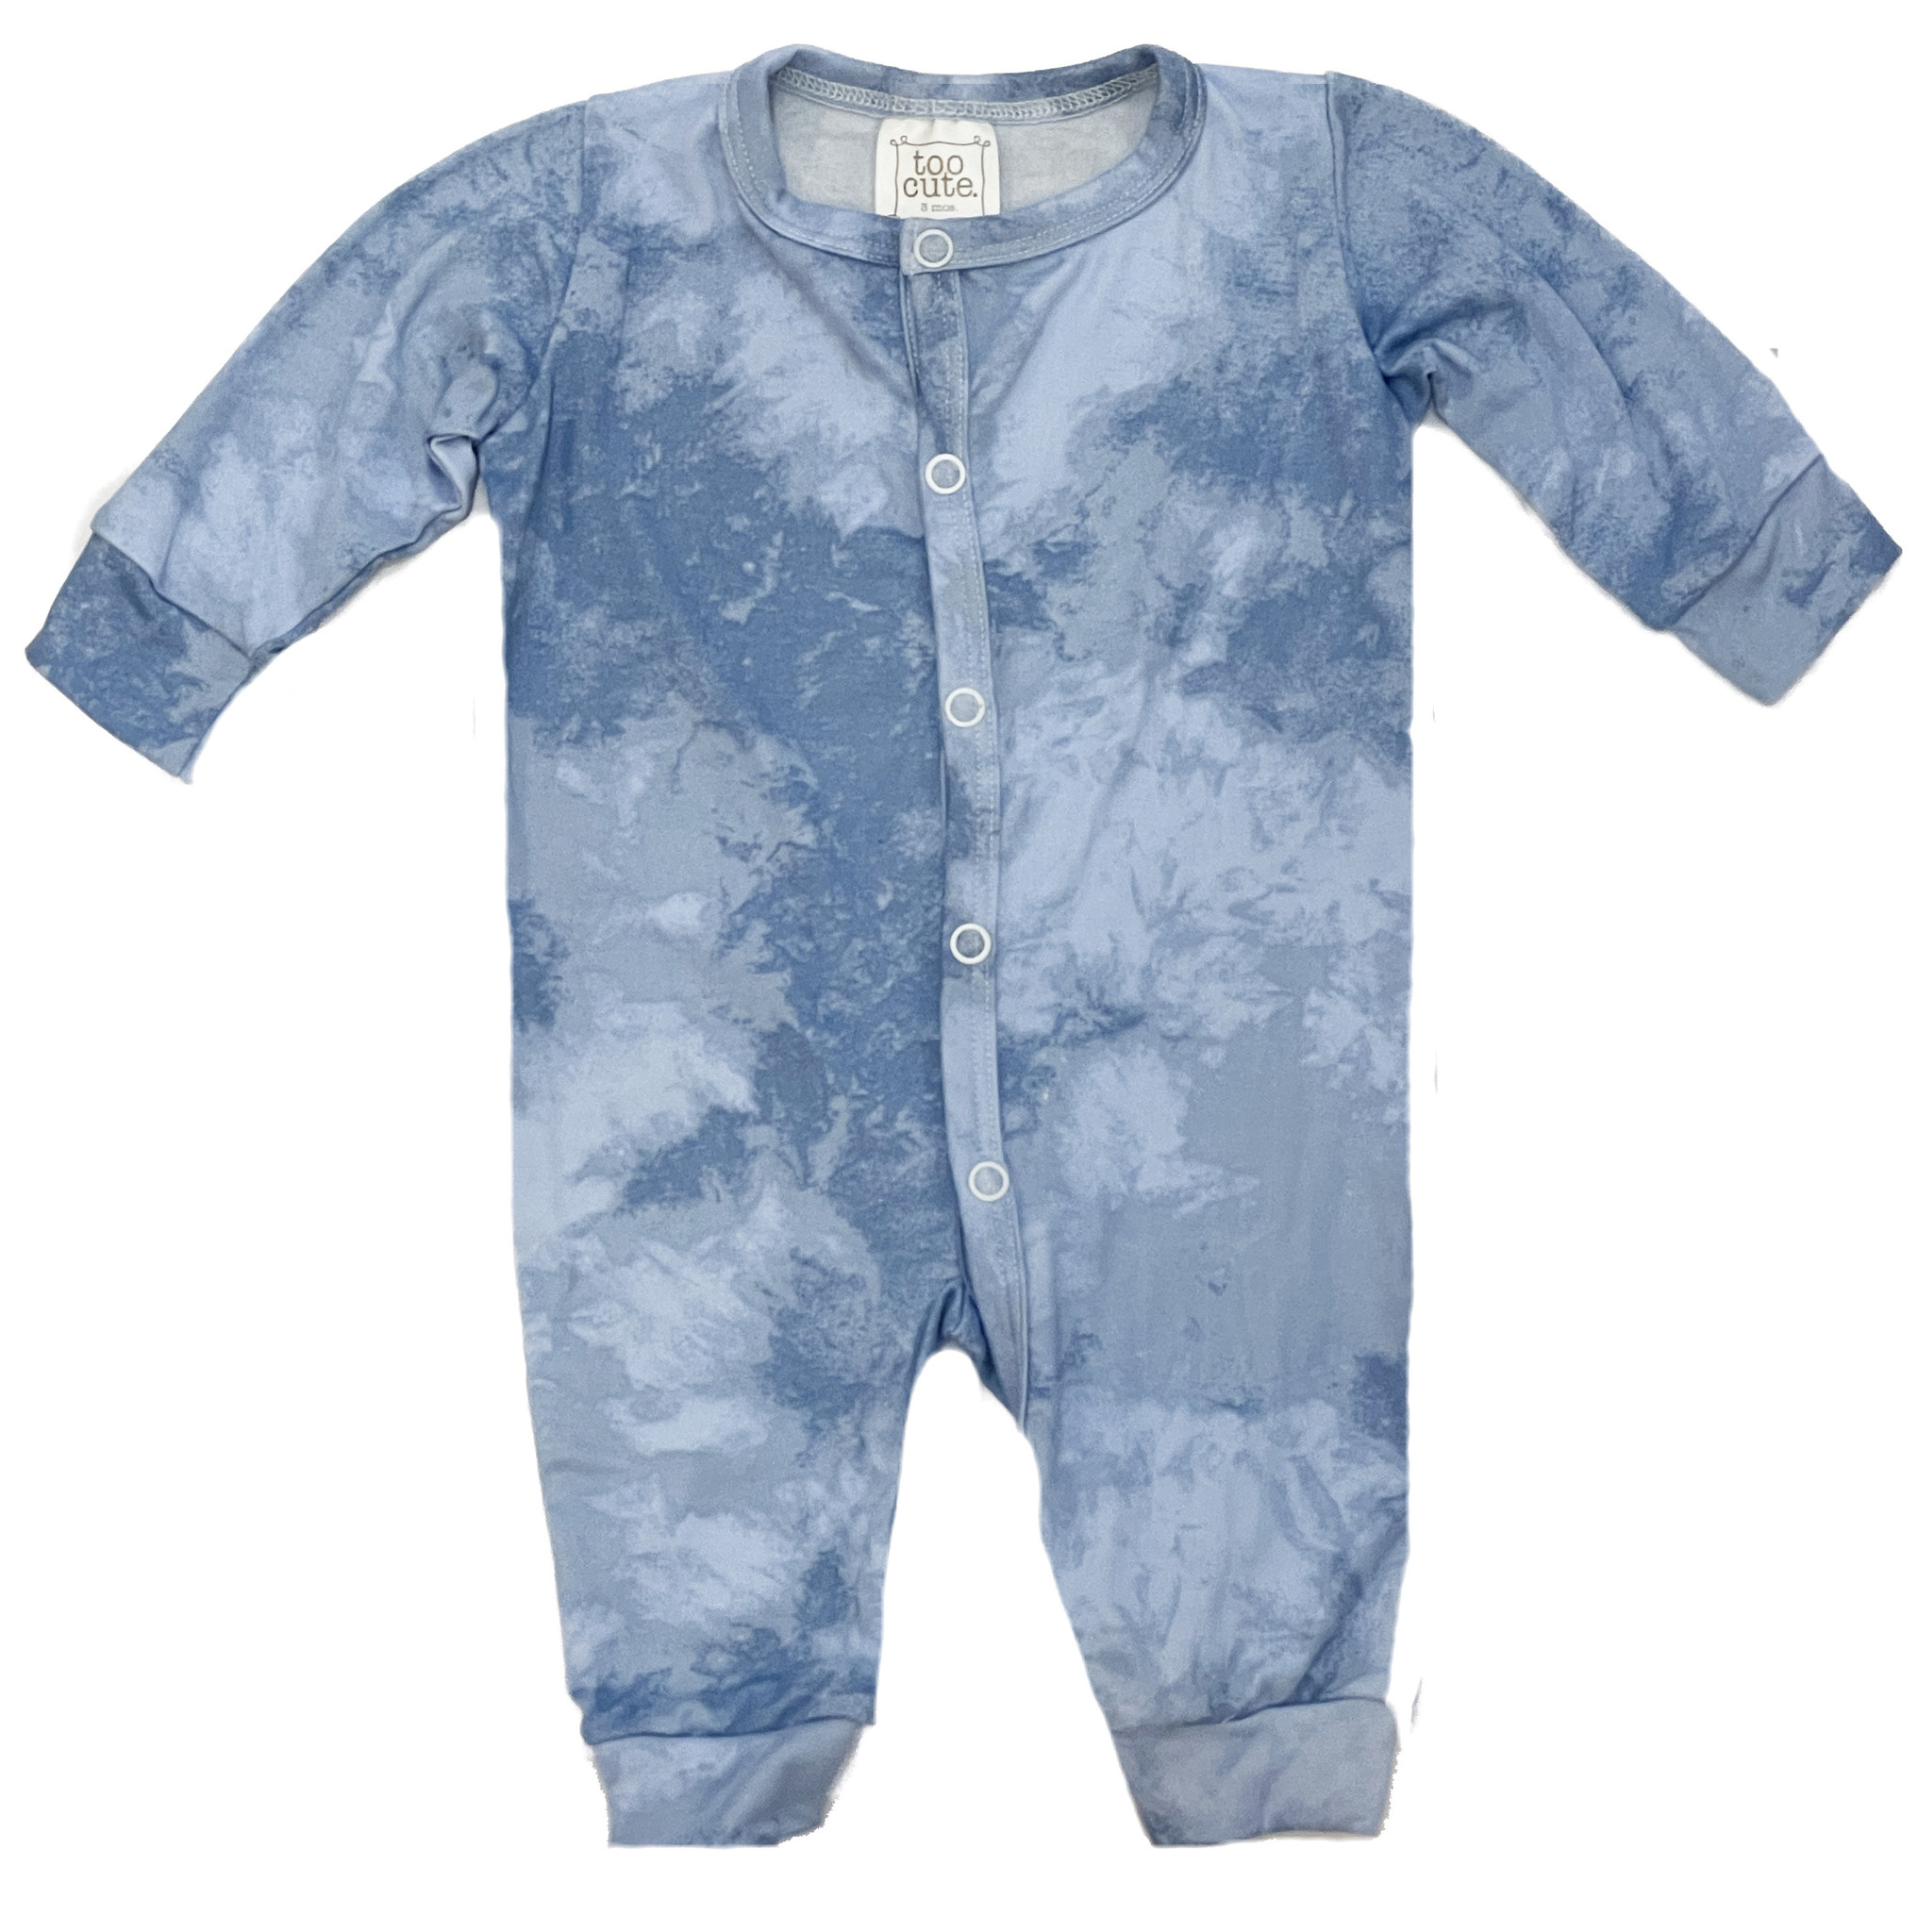 Too Cute New Blue TD Snap Coverall